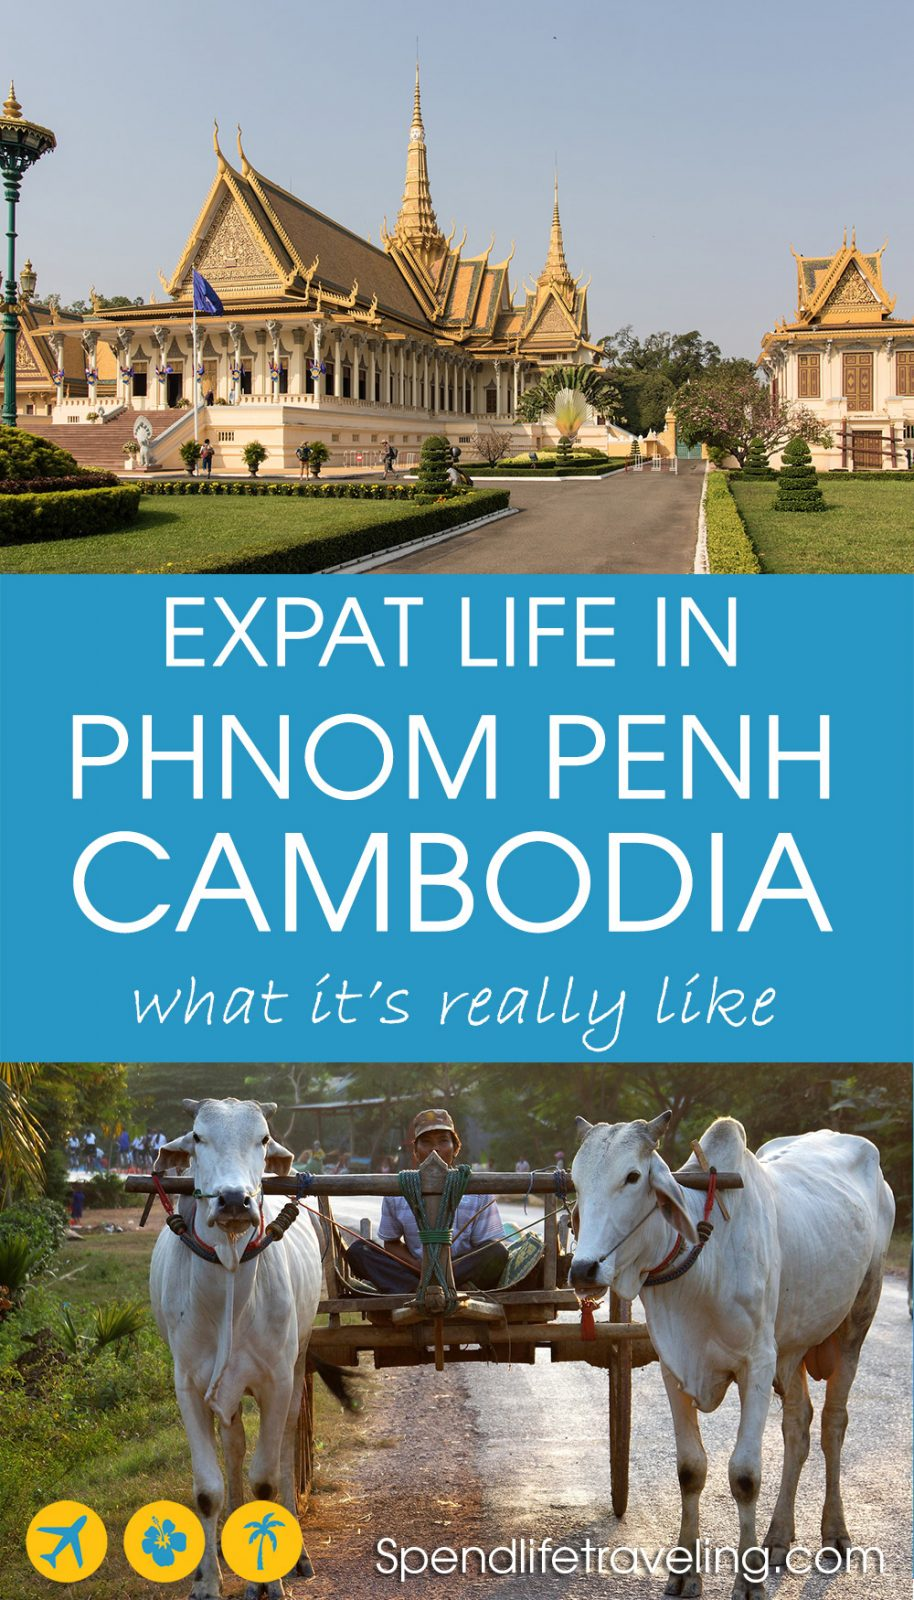 What is Phnom Penh and life in Cambodia really like? Interview with an expat. #PhnomPenh #Cambodiaexpat